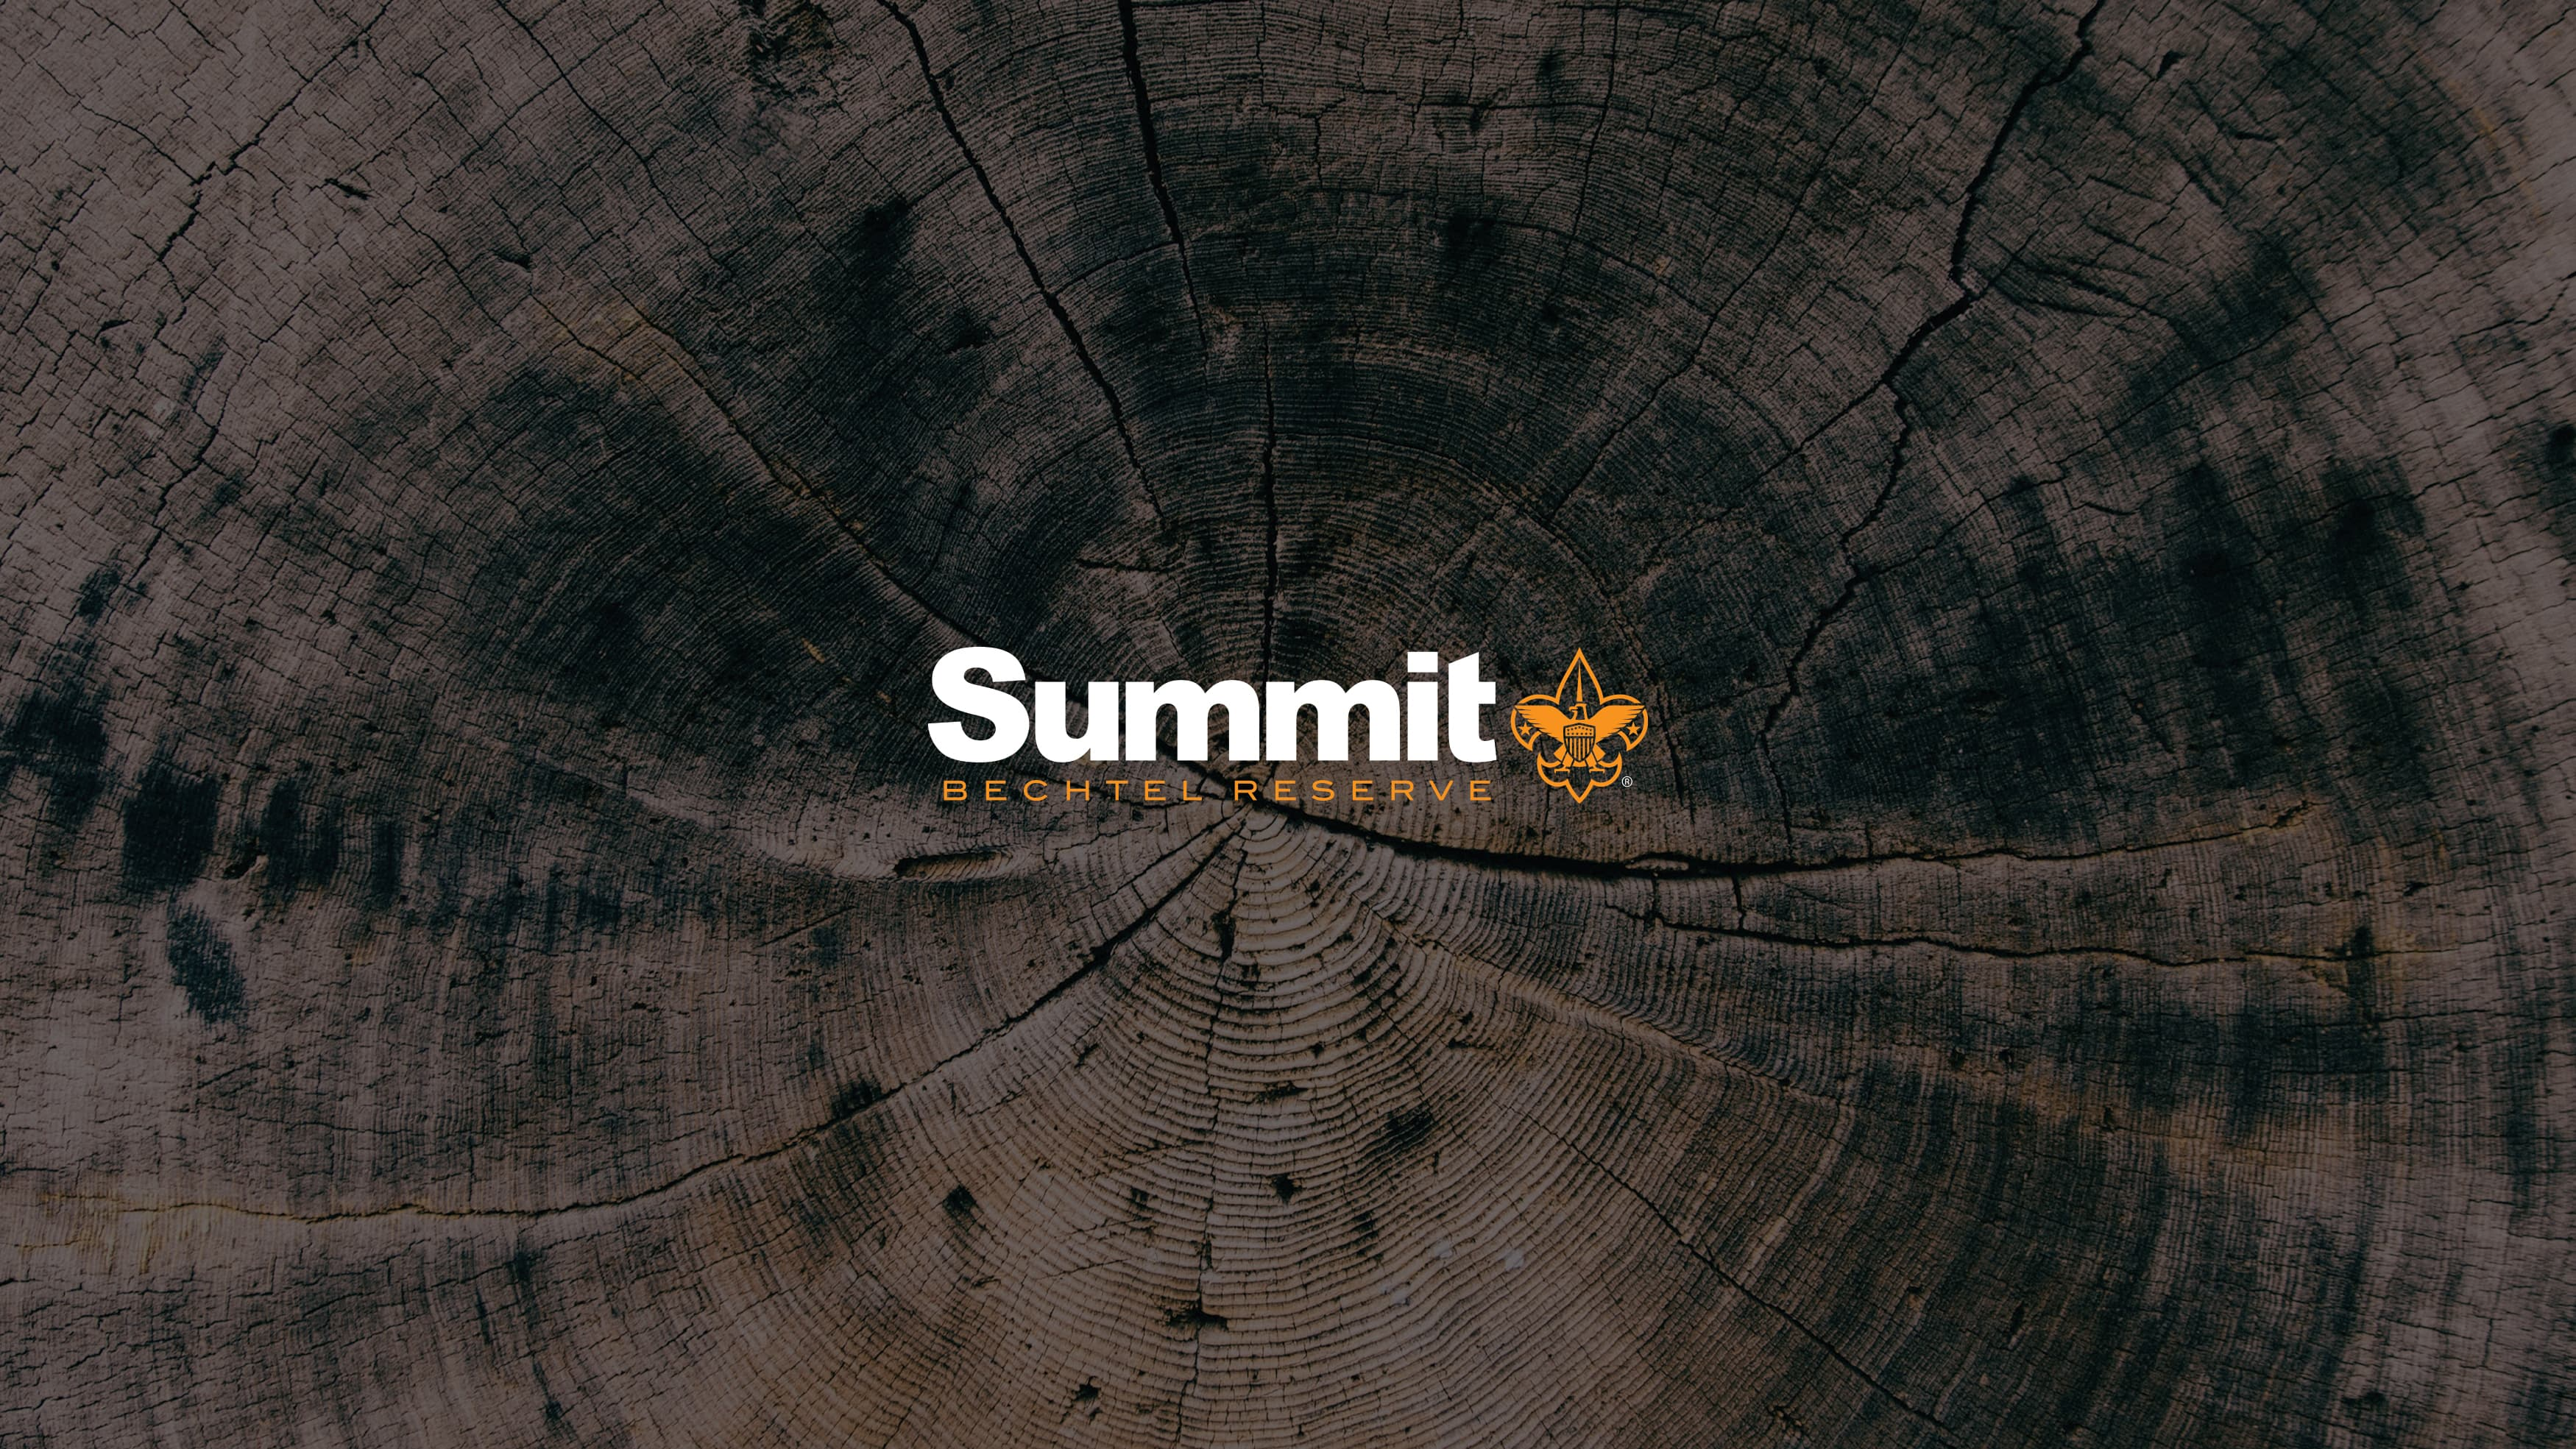 Logo for The Summit shown on top of a tree trunk texture.